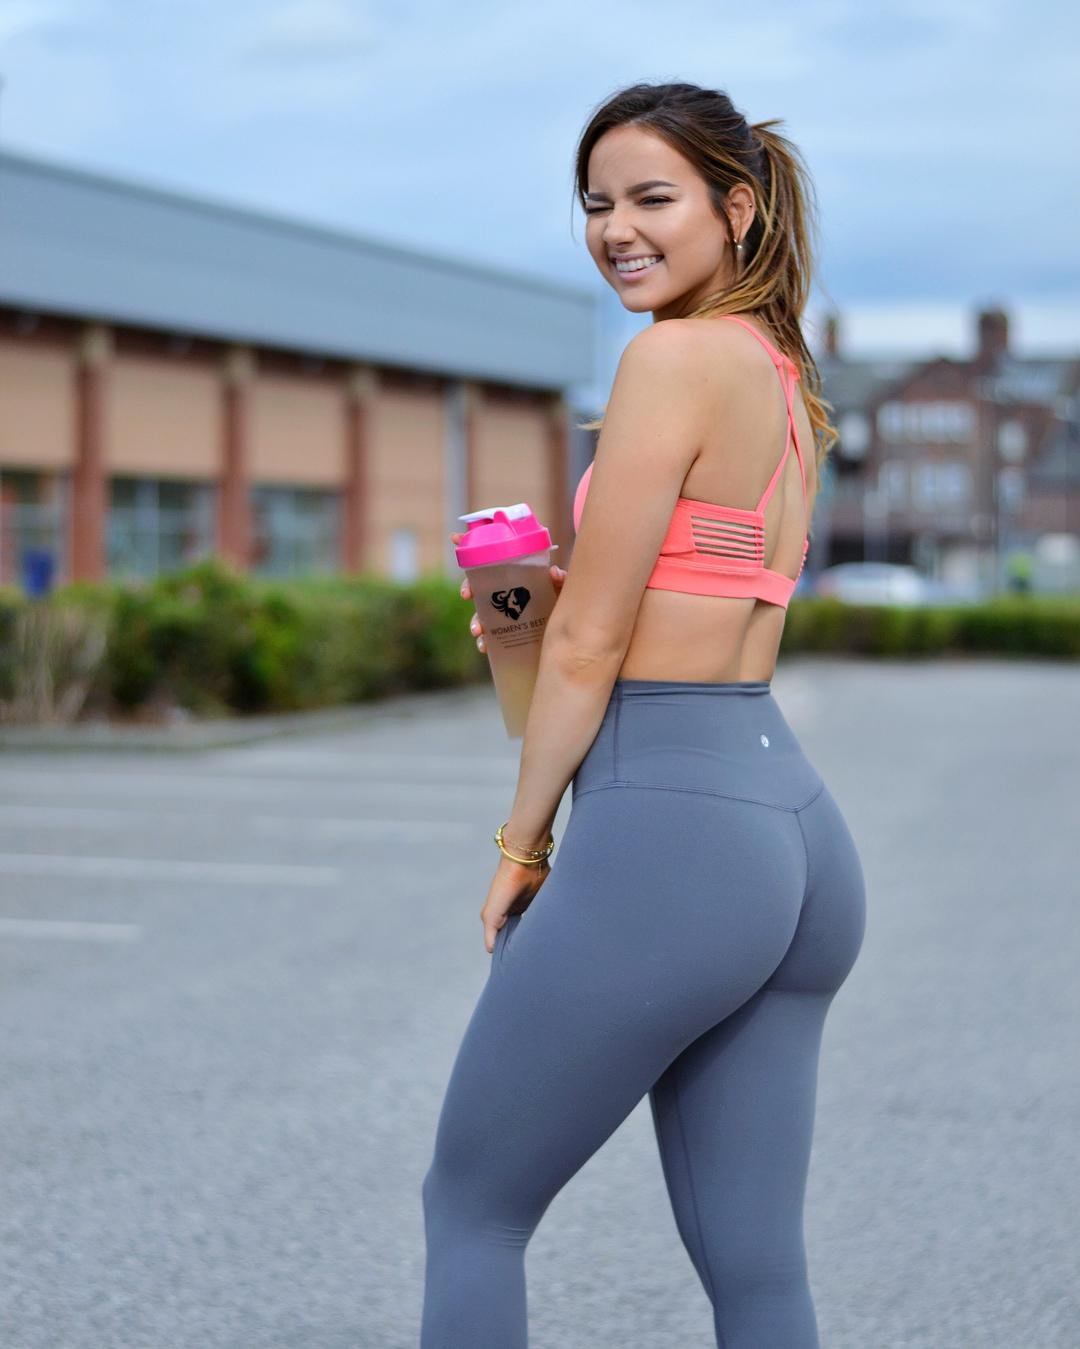 Isabela Fernandez Big Booty Sport Picture and Photo